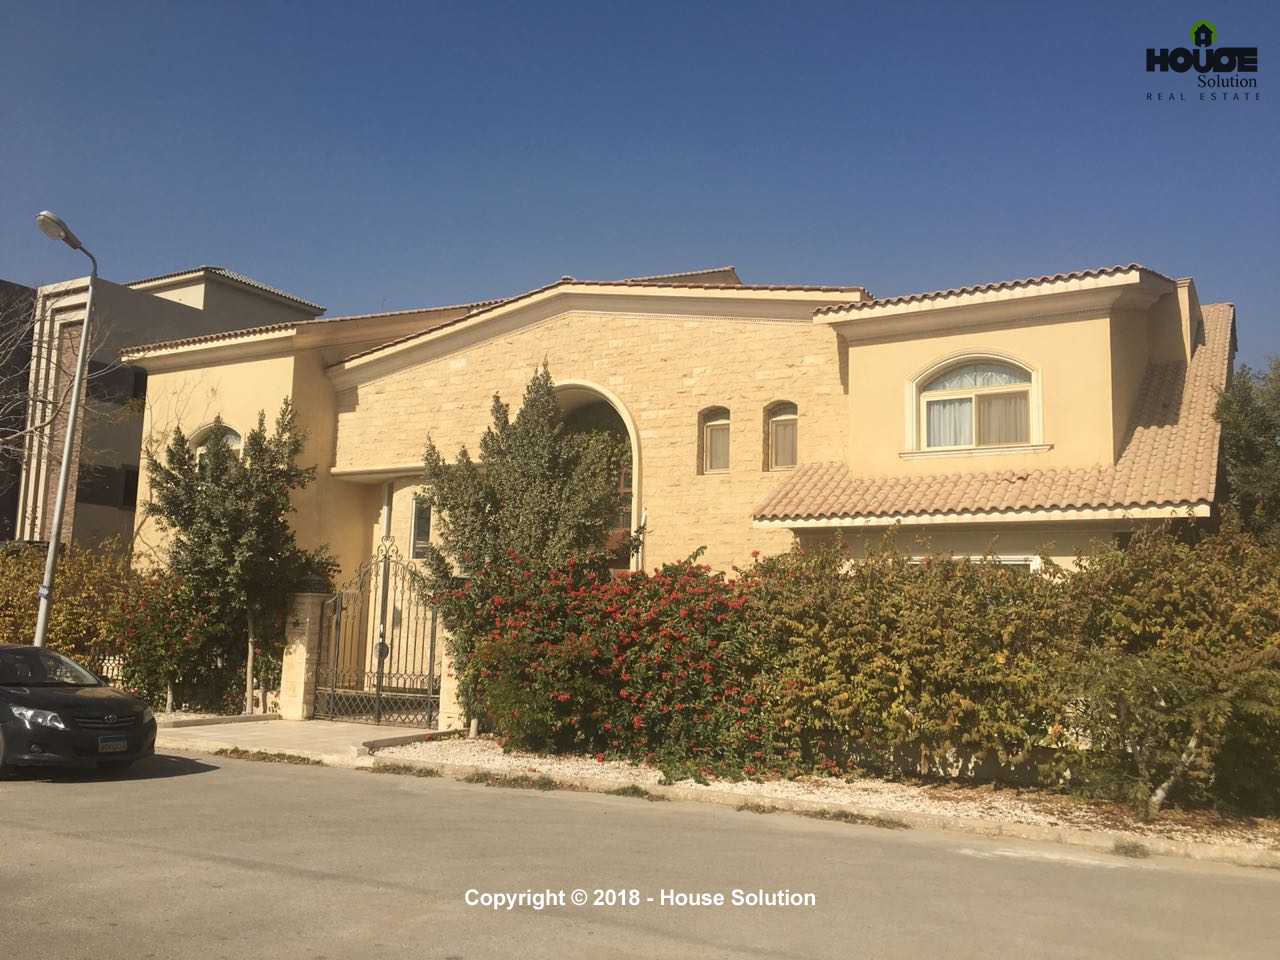 Villas For Rent In New Cairo 90 street -#22